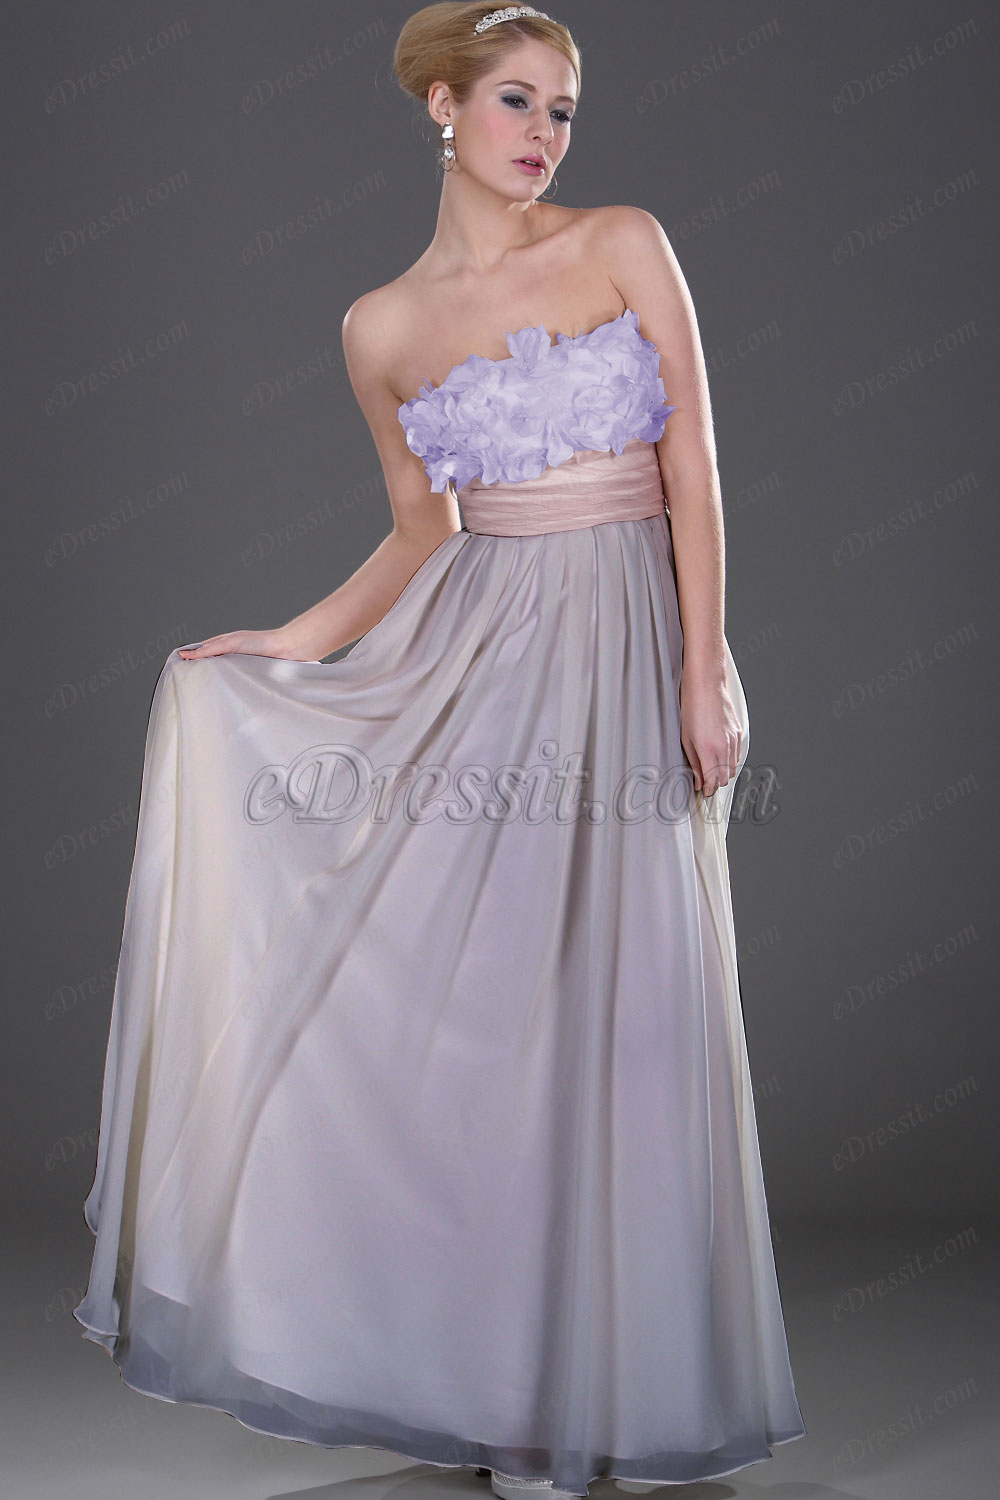 Clearance Sale! eDressit Evening Dress--Size UK10 (00107613b)